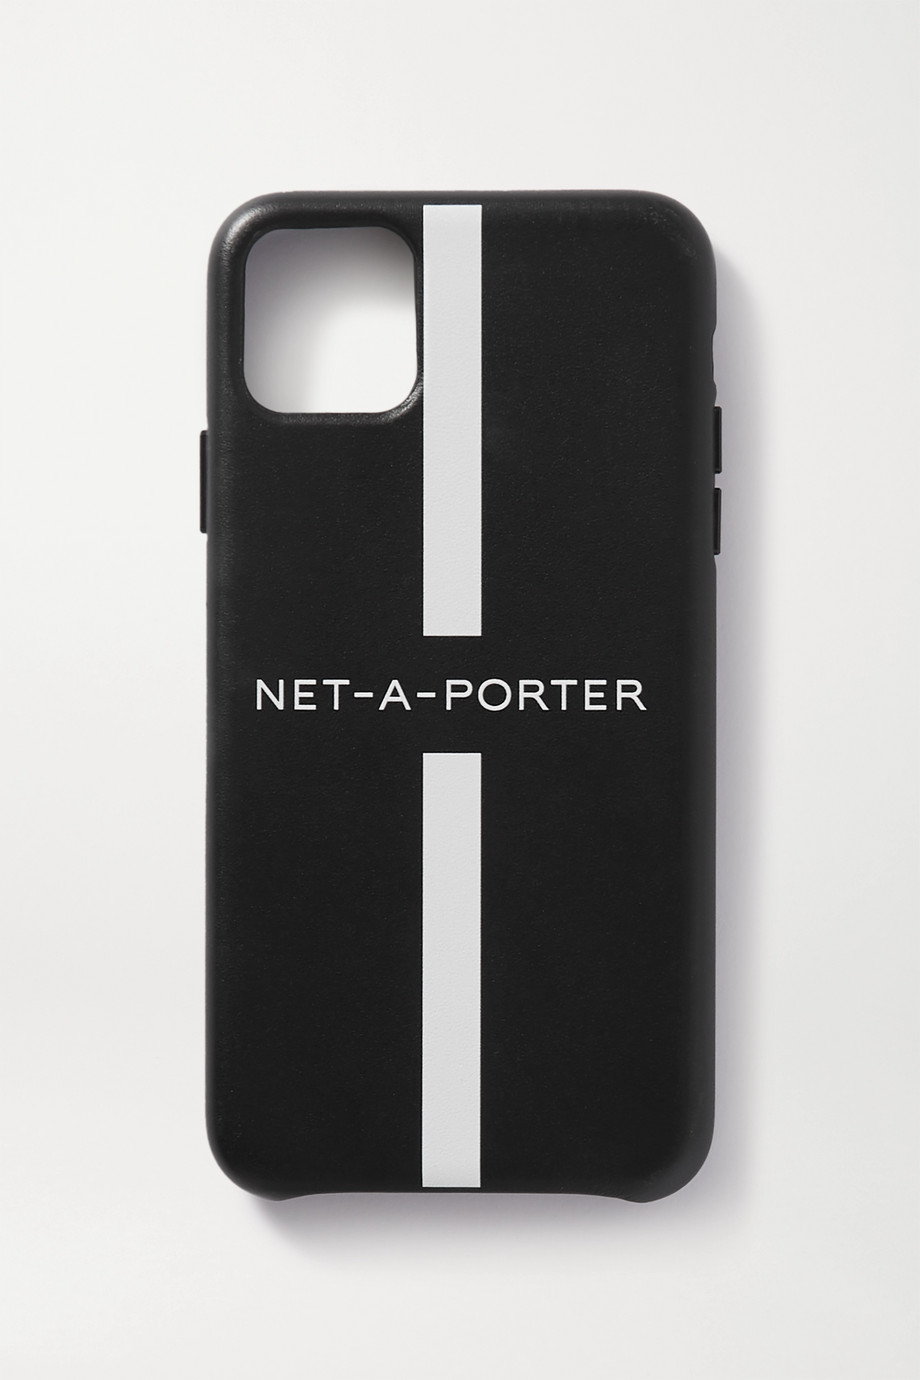 NET-A-PORTER + The Daily Edited printed leather iPhone 11 Pro Max case